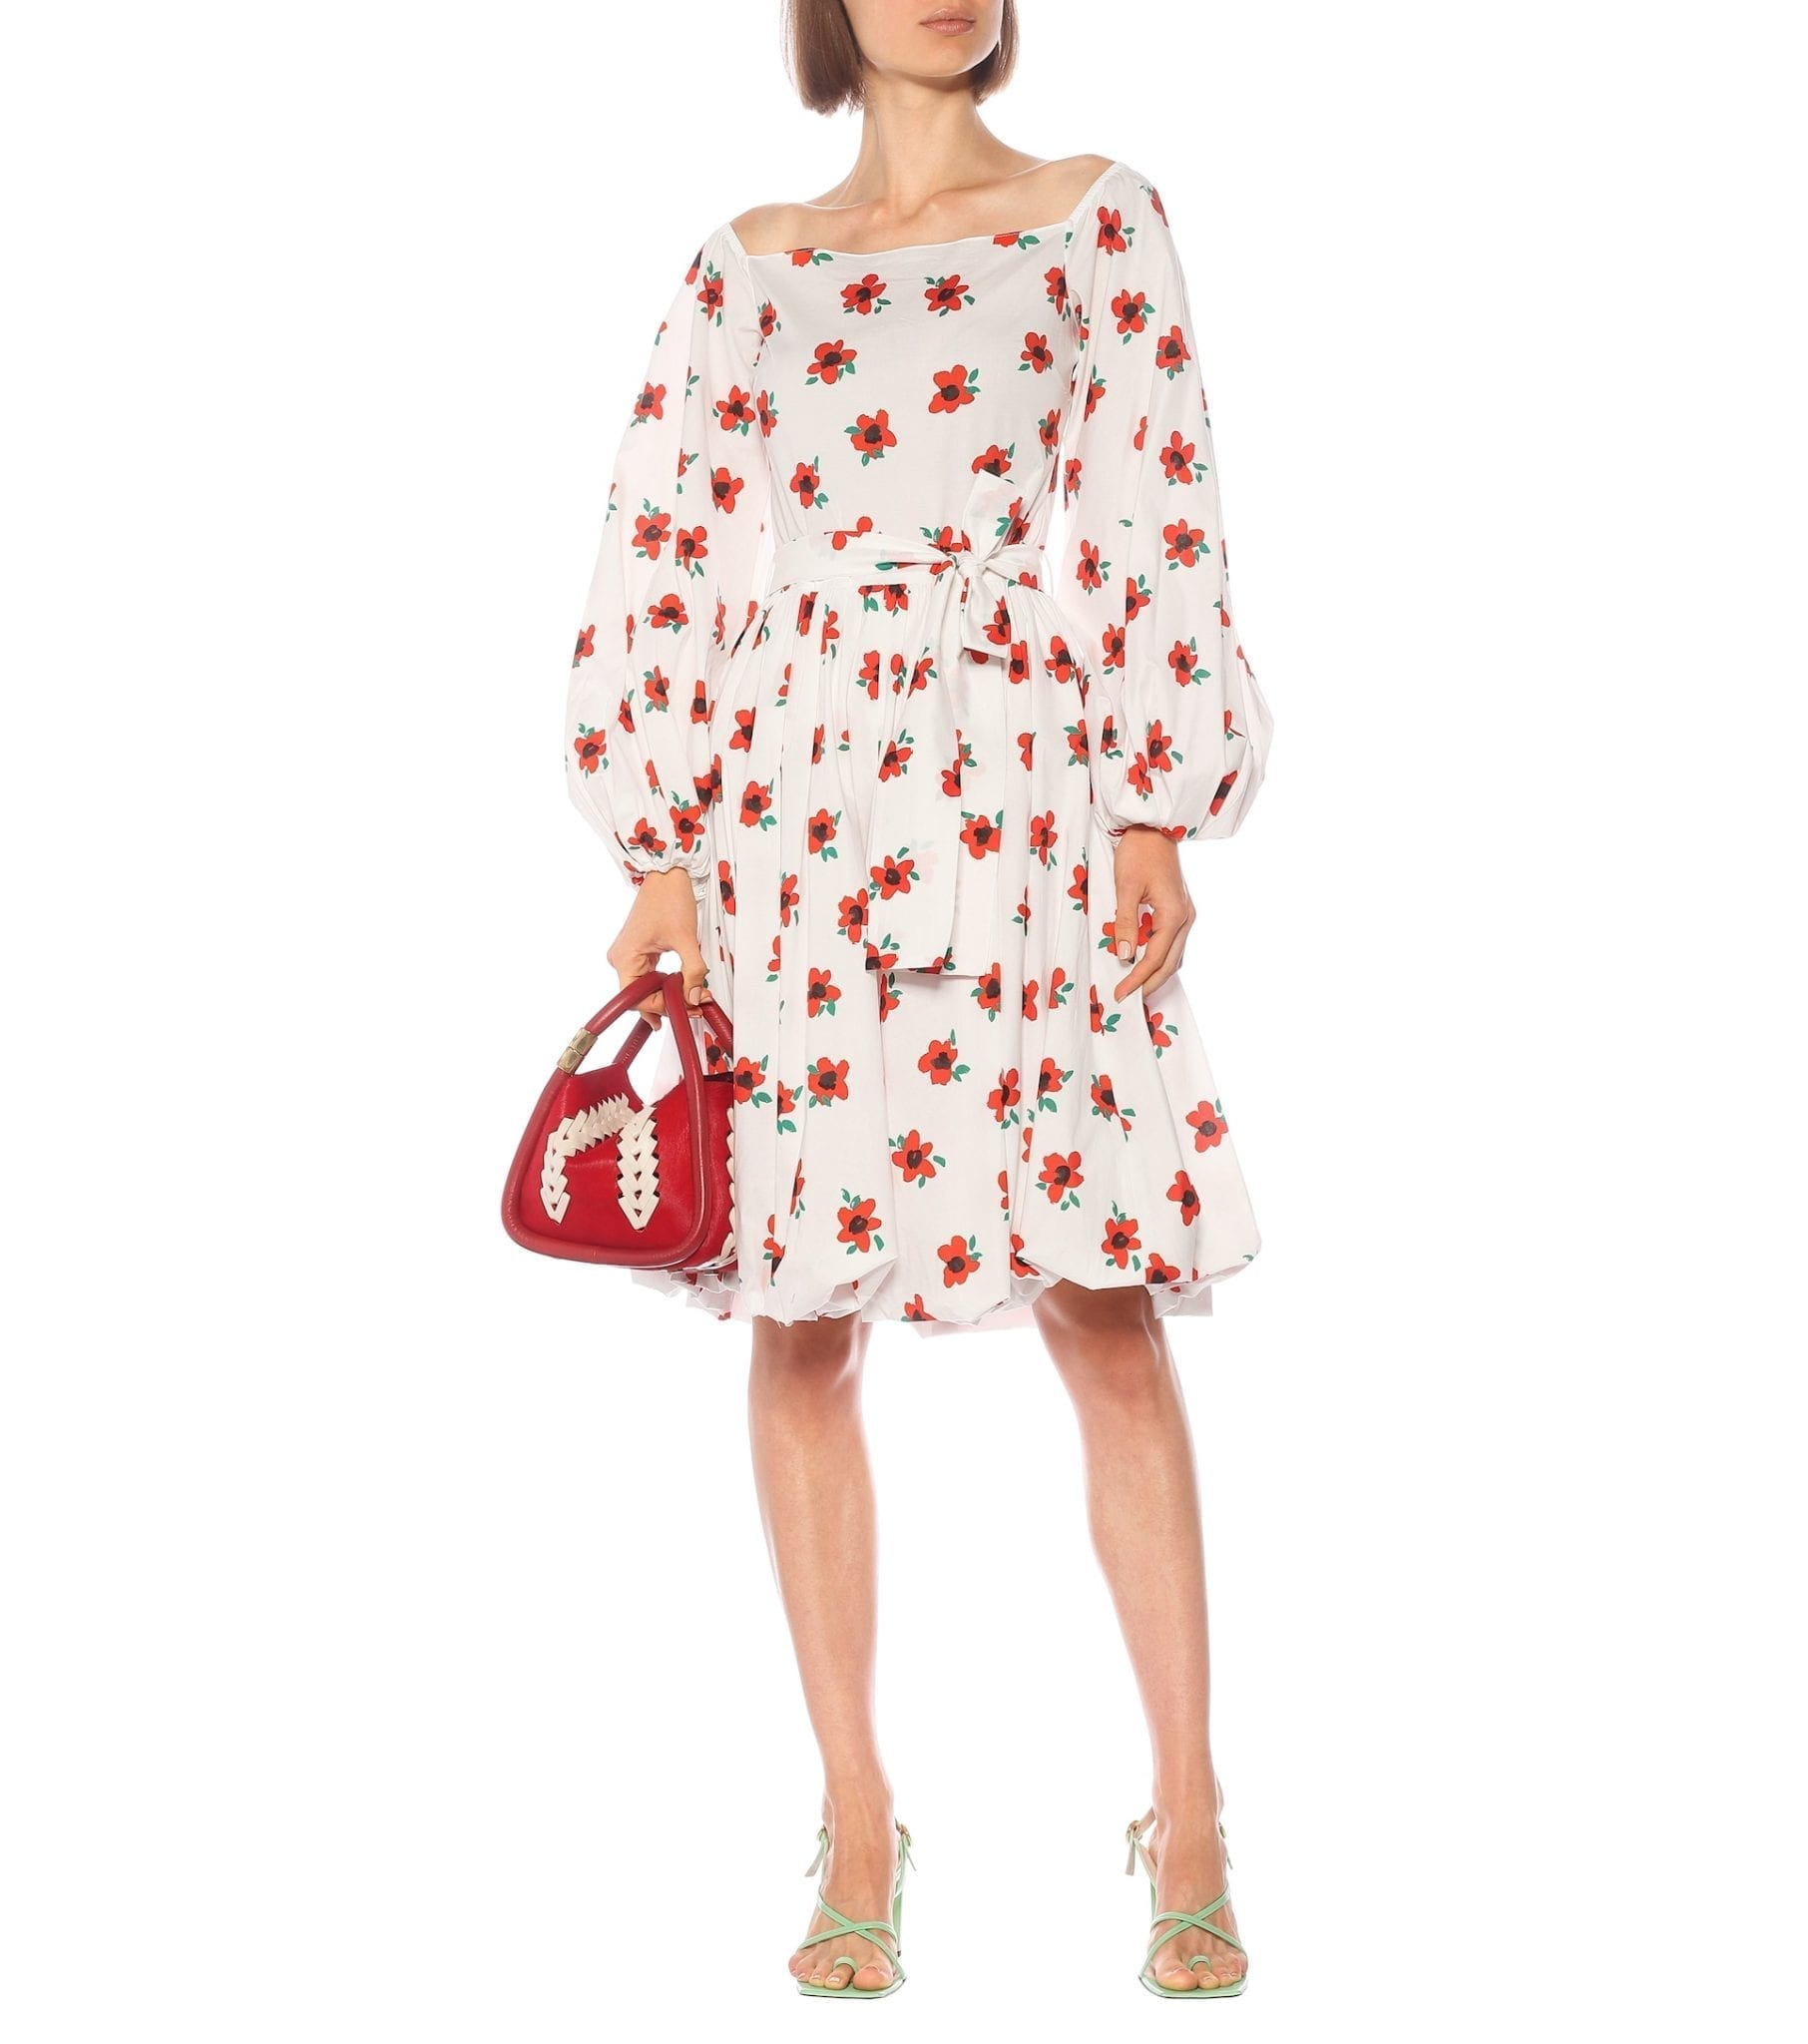 CAROLINE CONSTAS Bea Floral Cotton Midi Dress